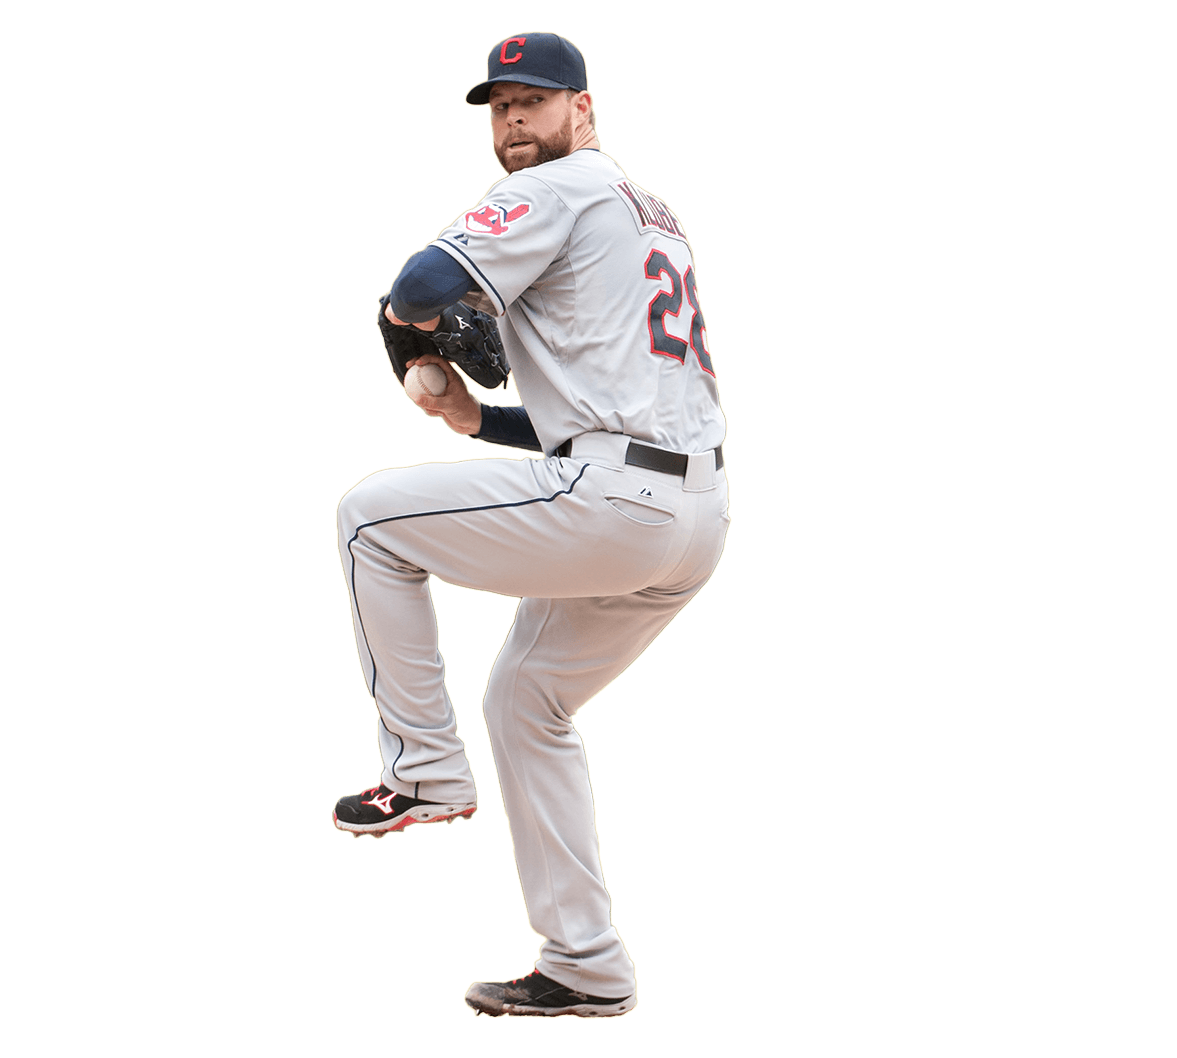 Baseball mlb player clipart png png black and white library Cleveland Indians Player transparent PNG - StickPNG png black and white library